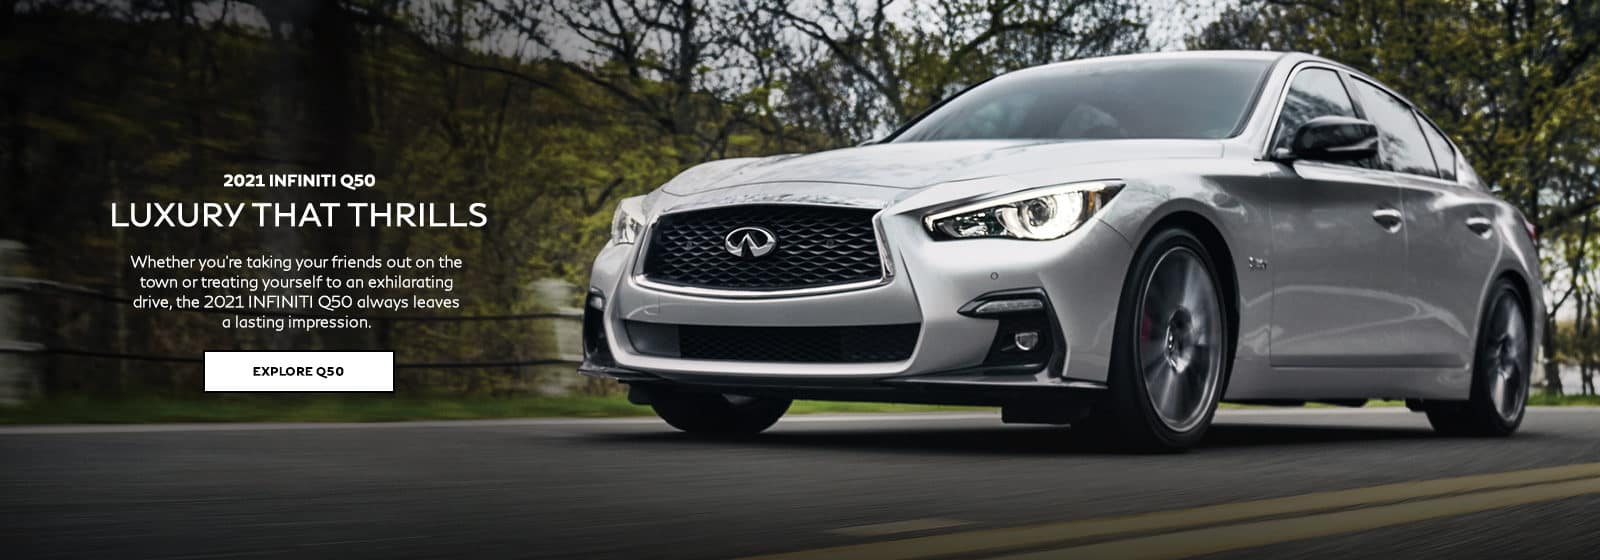 2021 INFINITI Q50. Click to explore.